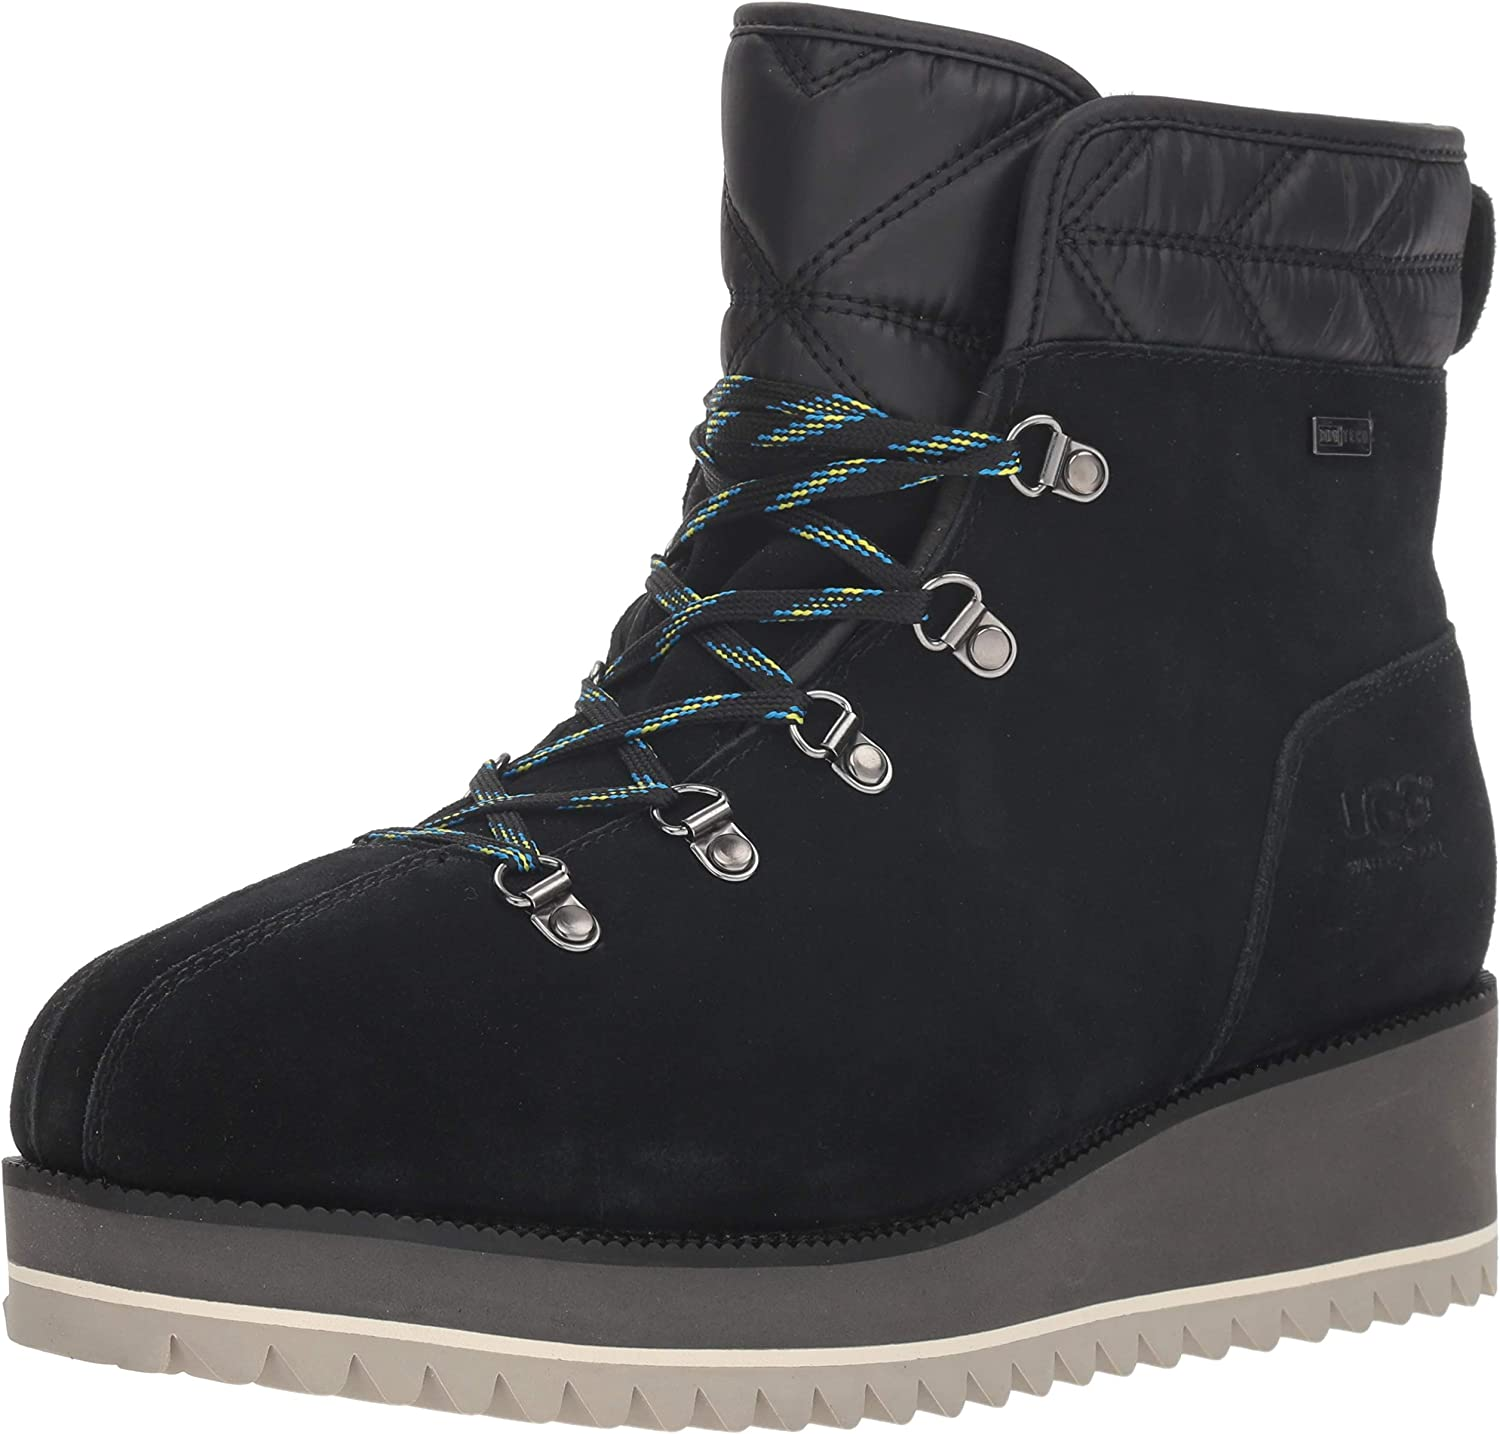 UGG Women's W Birch Lace-up Snow Boot